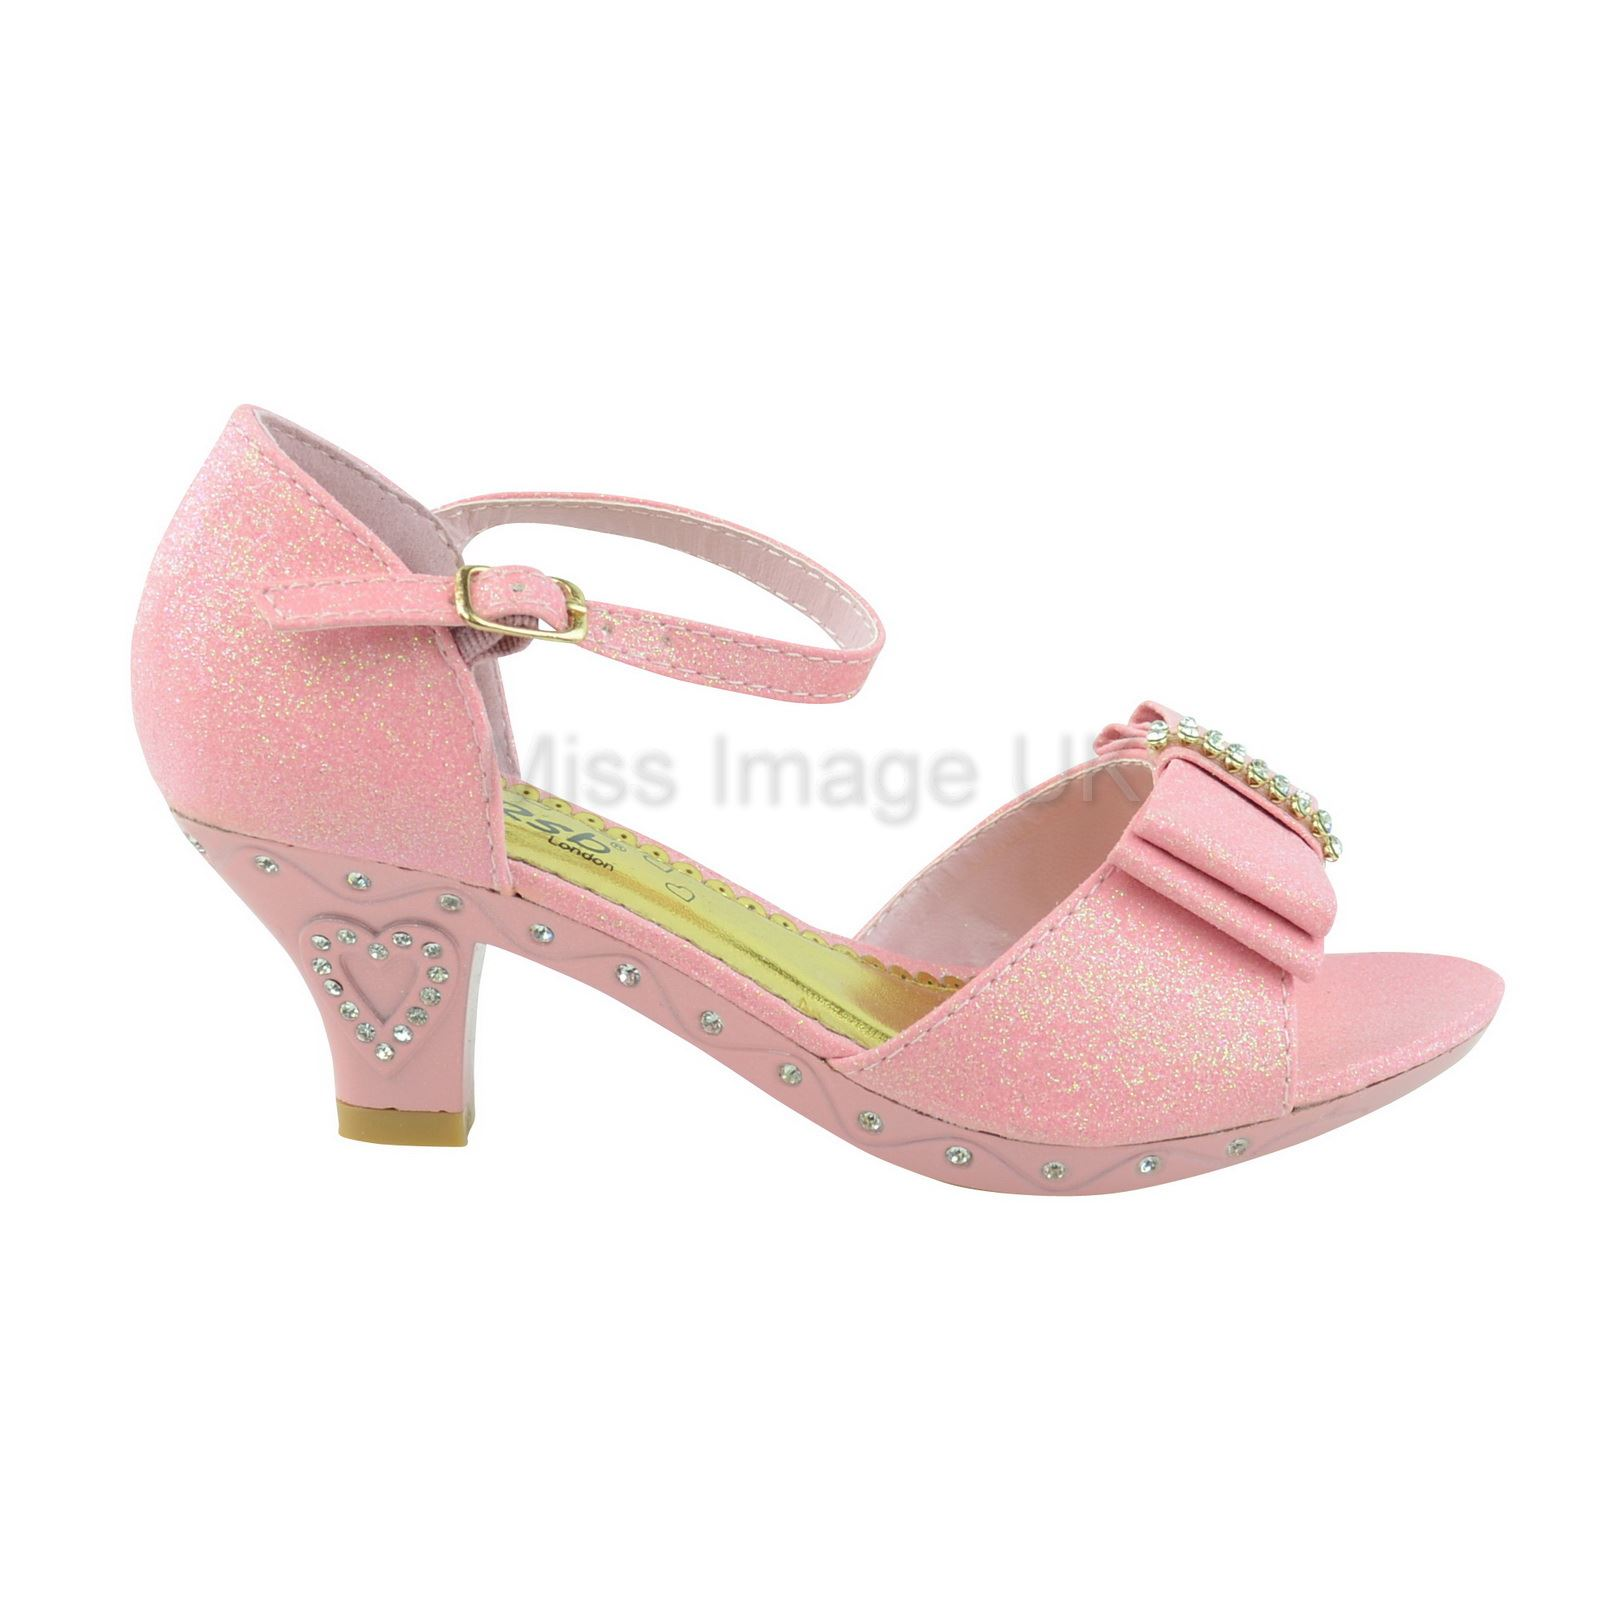 high heels for kids size 6 - photo #23